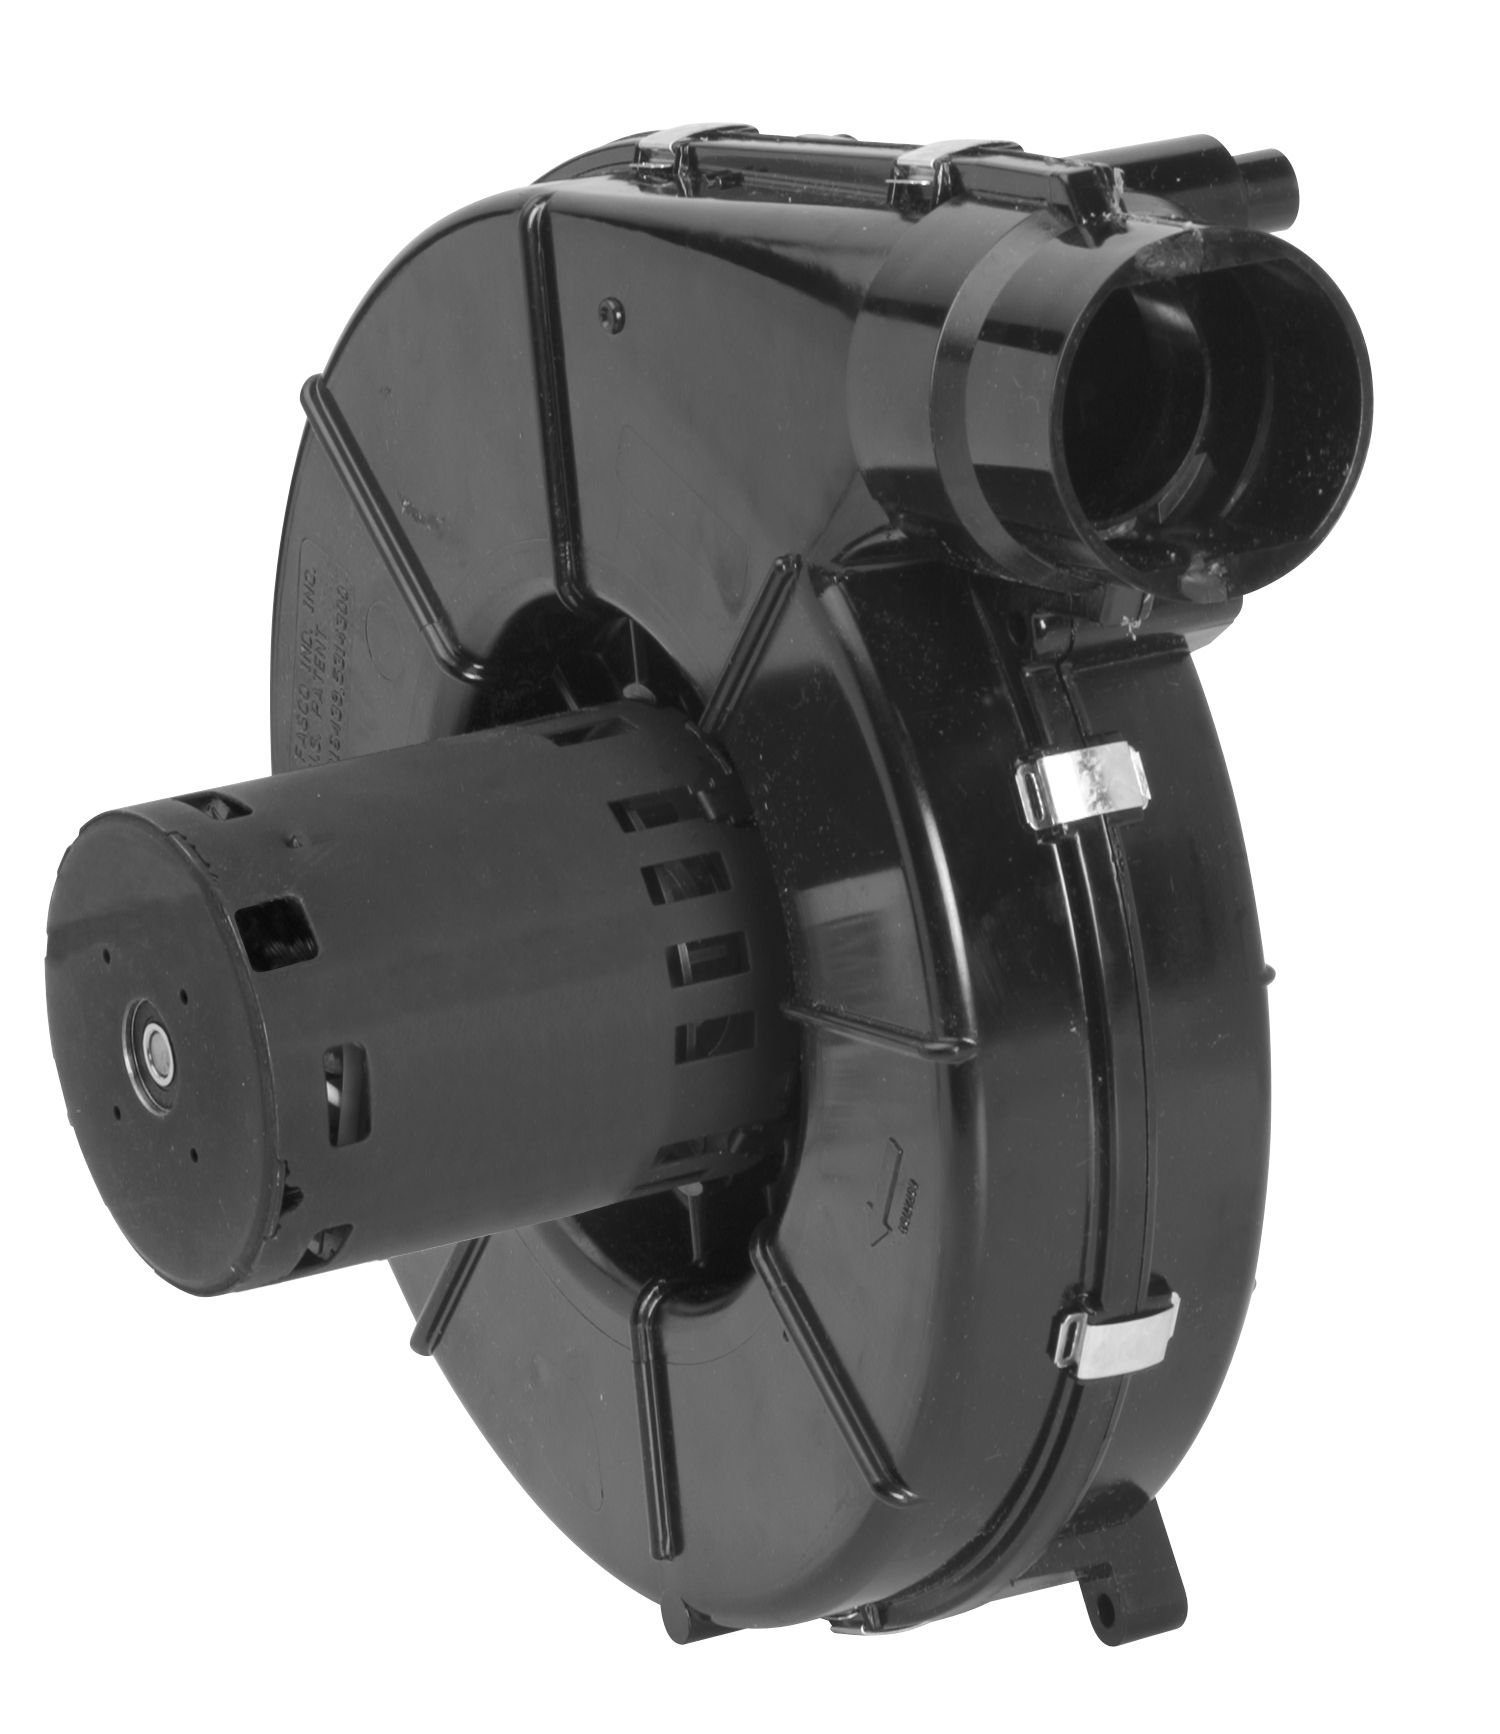 Fasco A170 Specific Purpose Blowers, Inter City 7021-10702, 7021-10299 by Fasco (Image #1)